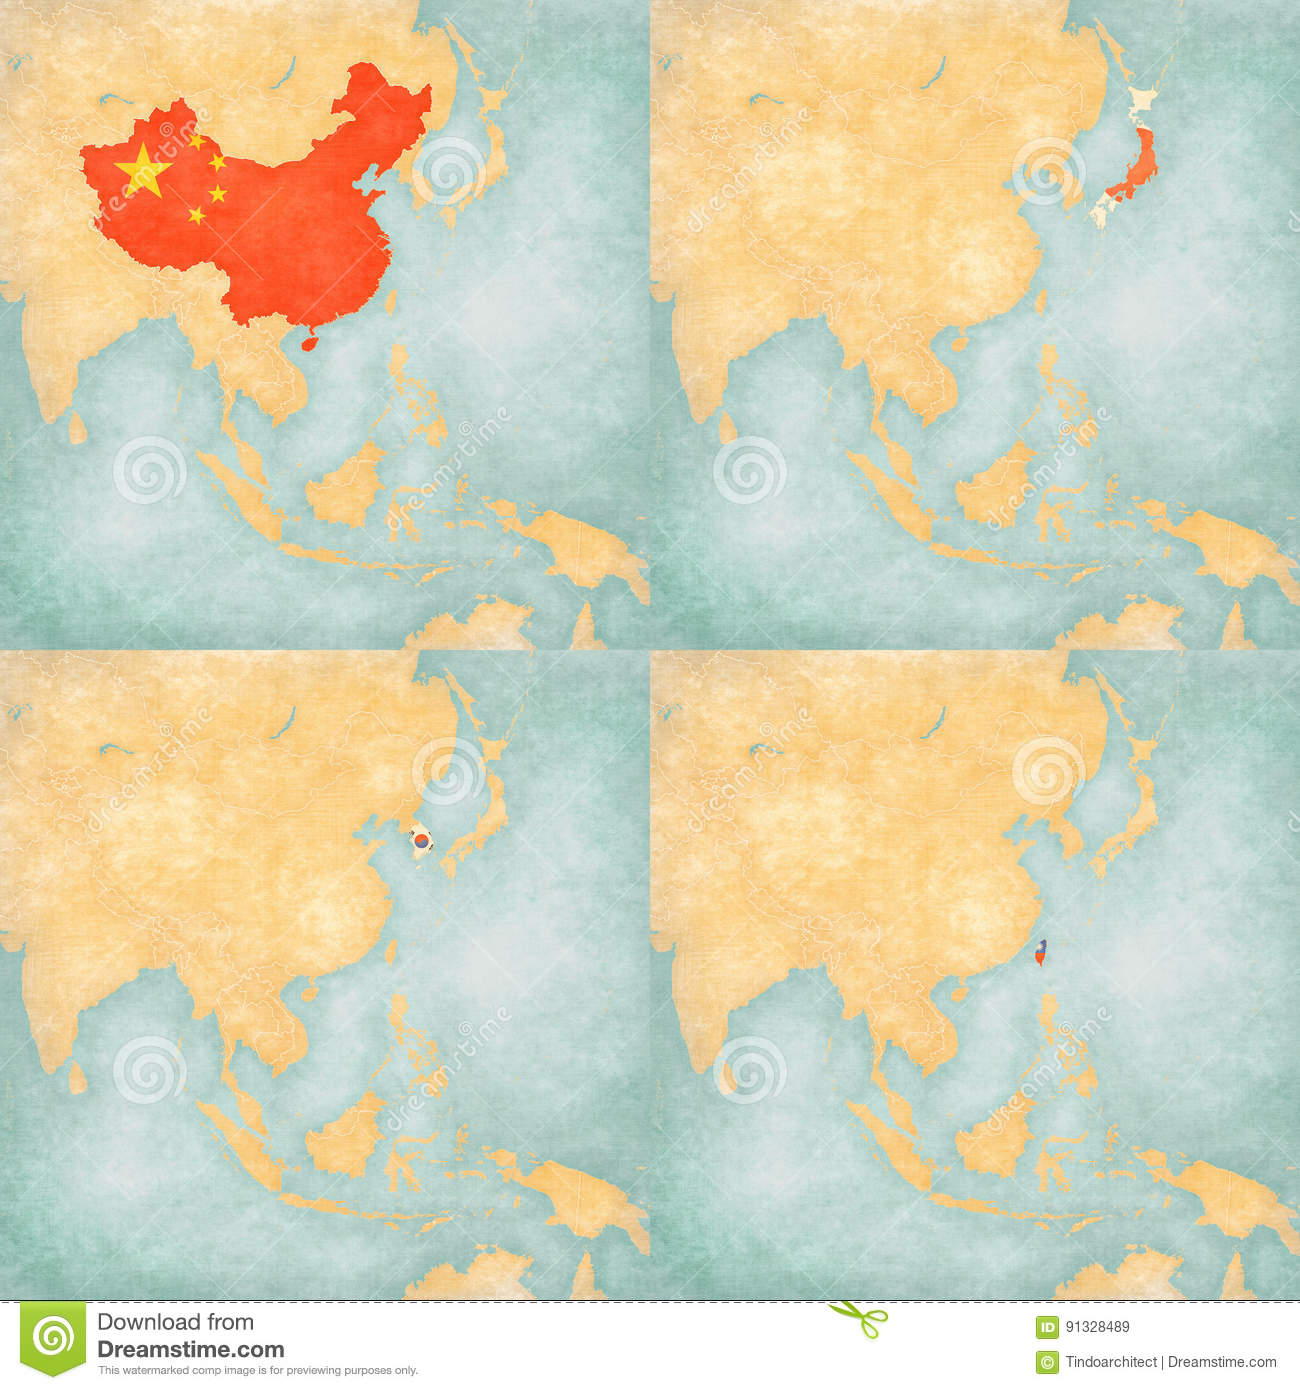 Map Of Asia Japan And China.Map Of East Asia China Japan South Korea And Taiwan Stock